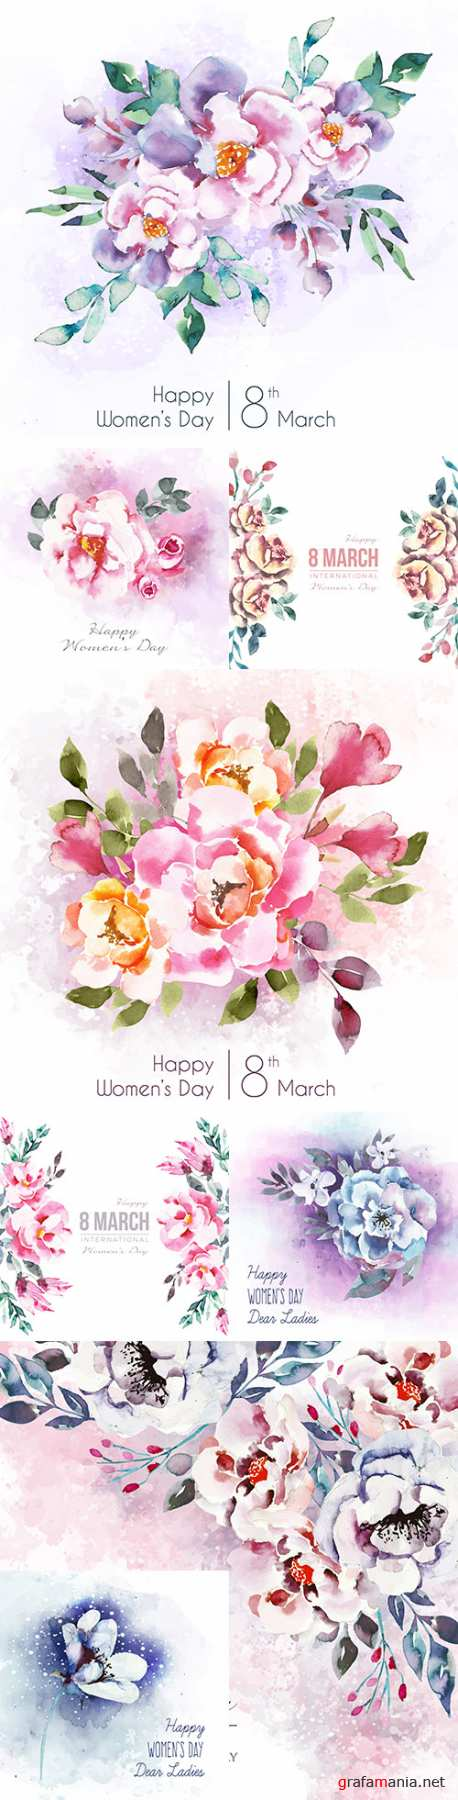 Women 's Day inscription with beautiful watercolour flowers